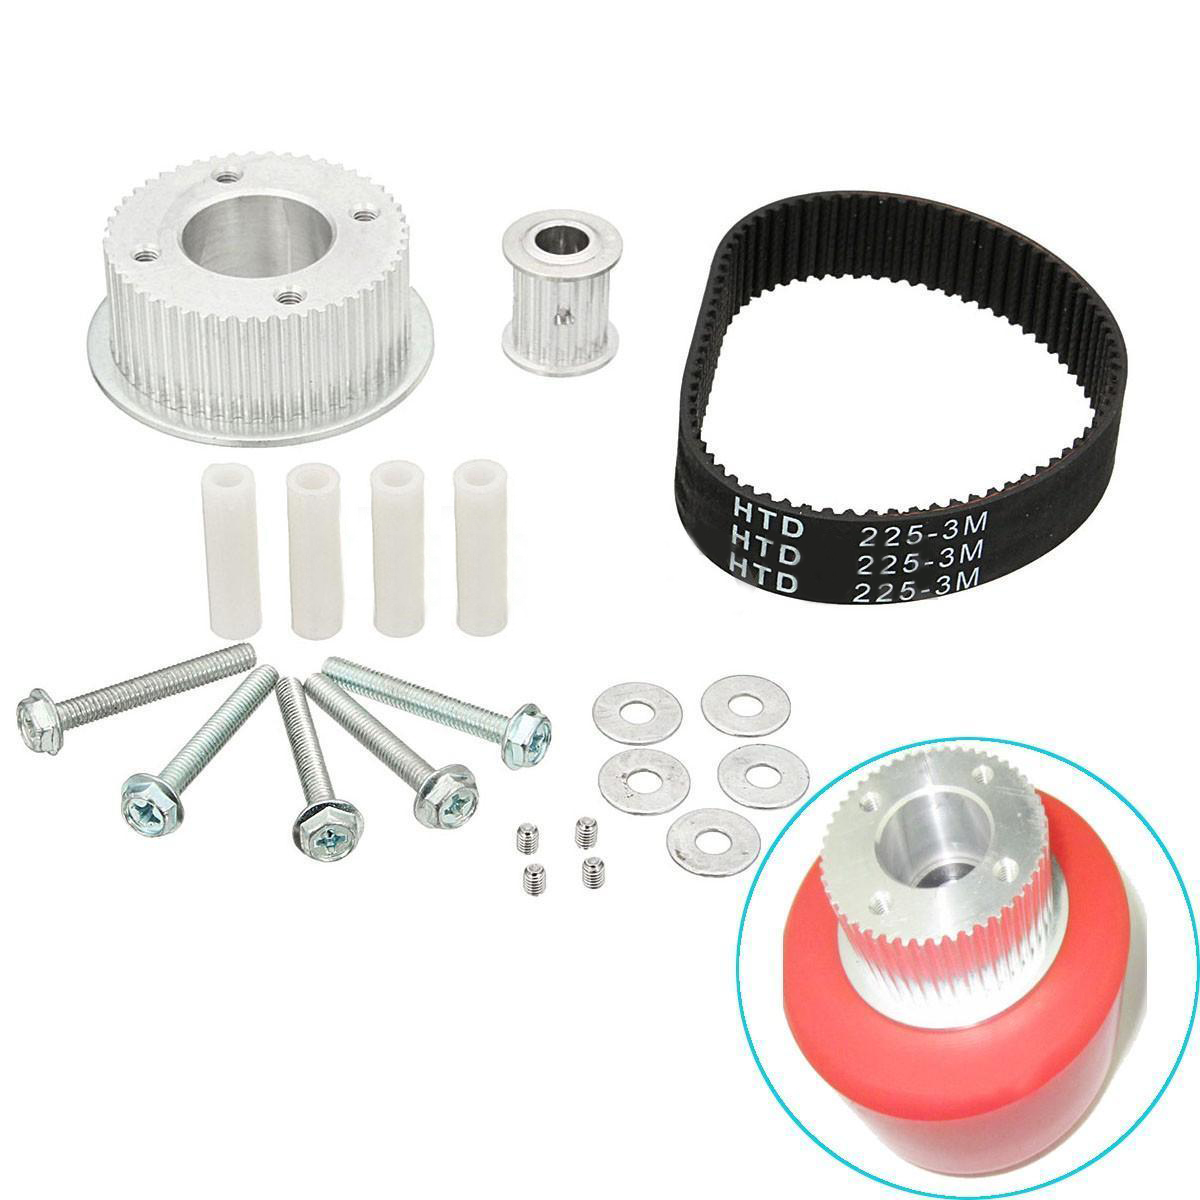 Mayitr 17PCS Electric Skateboard Pulley Motor Mount Drive Kit Parts for 80MM Wheels Skate Board Parts Accessories